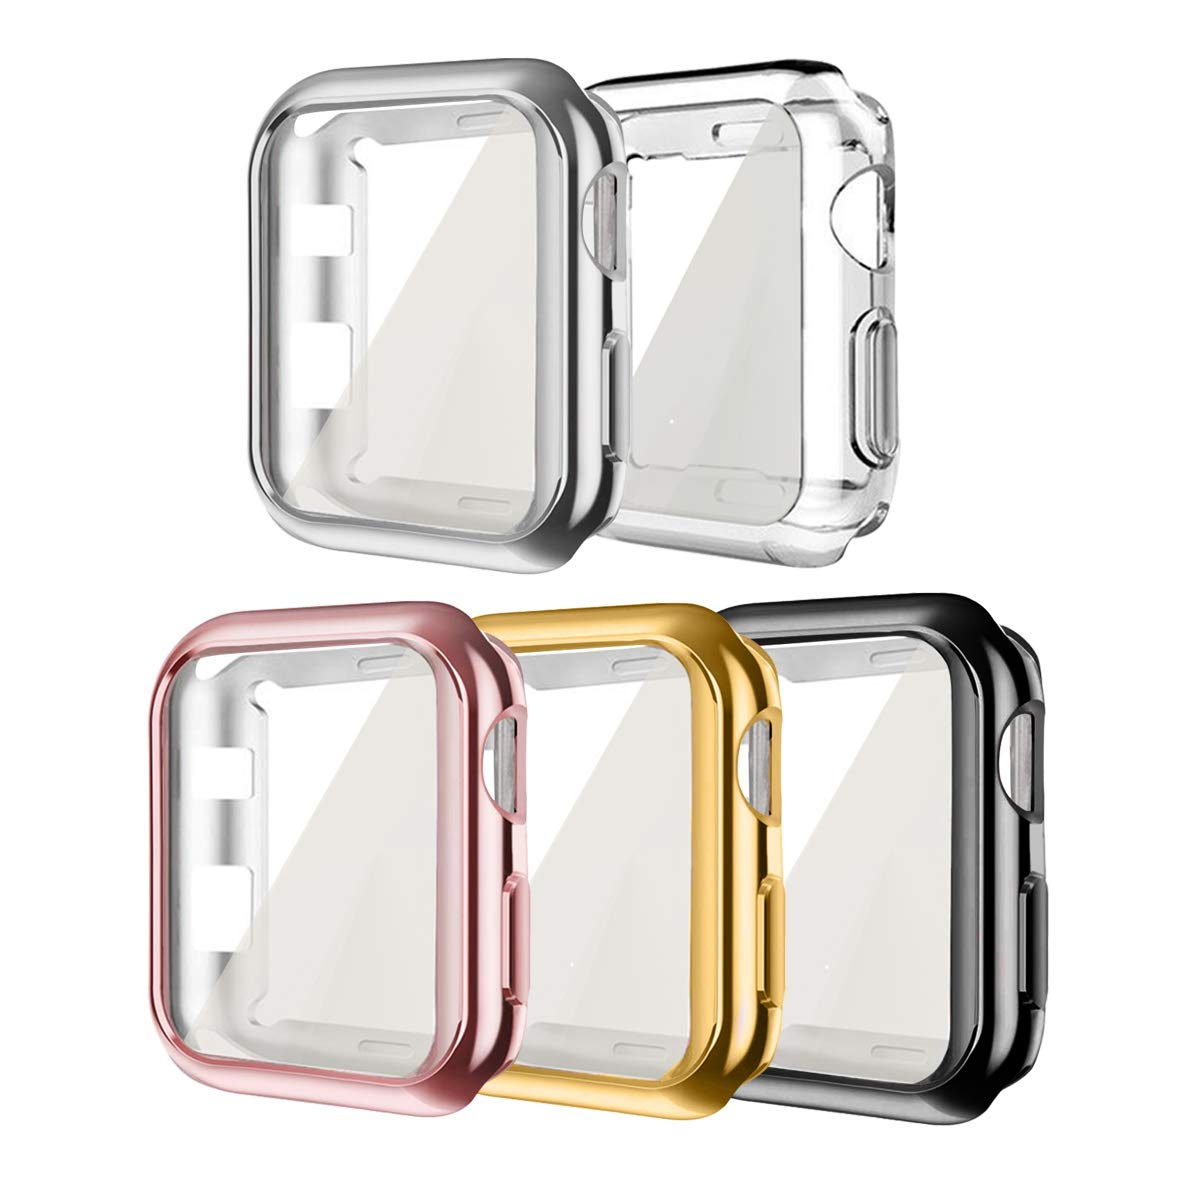 Compatible for Apple iWatch Case 38mm, 5 Pack hd Clear Ultra-Thin Screen Protector TPU All-Around Full Front Protective Case Cover Compatible for Apple Watch Series 3 Series 2 (5Pack, 38mm)